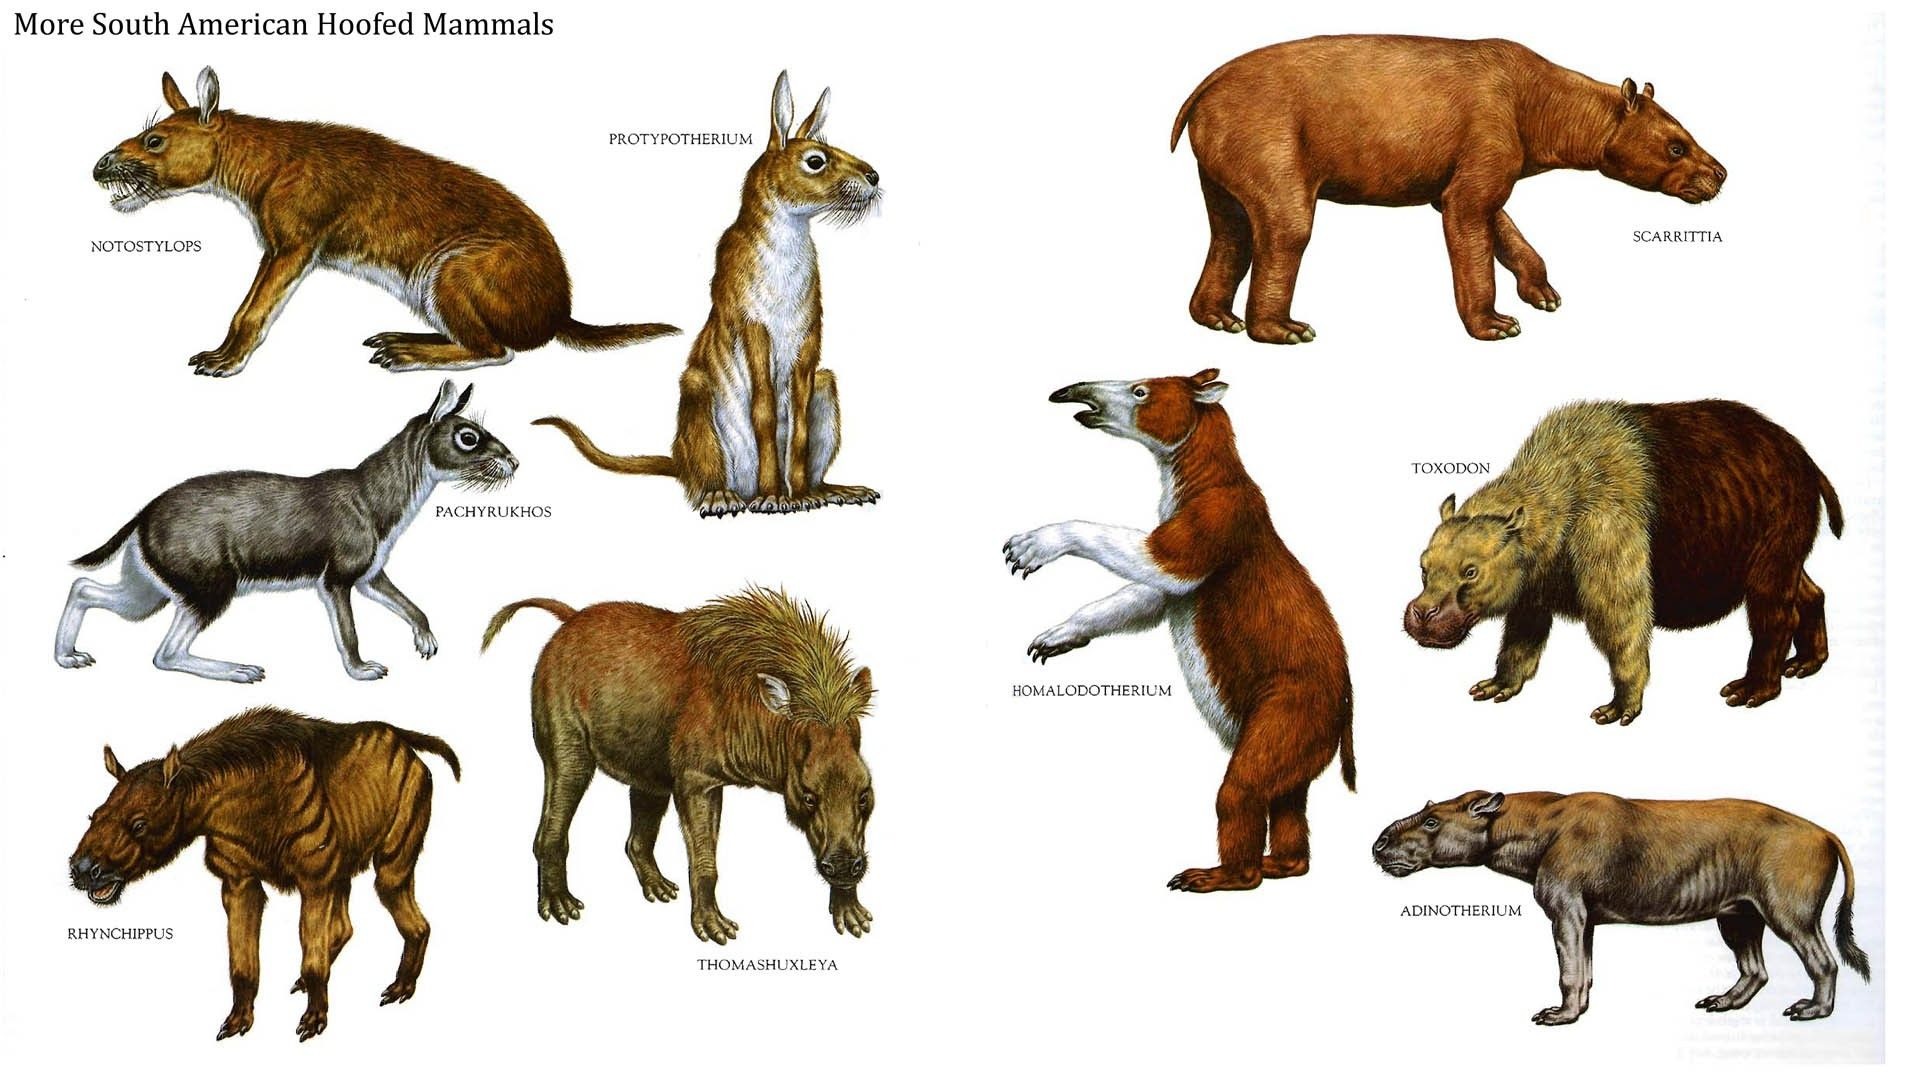 South American hoofed mammels,during the Miocene and